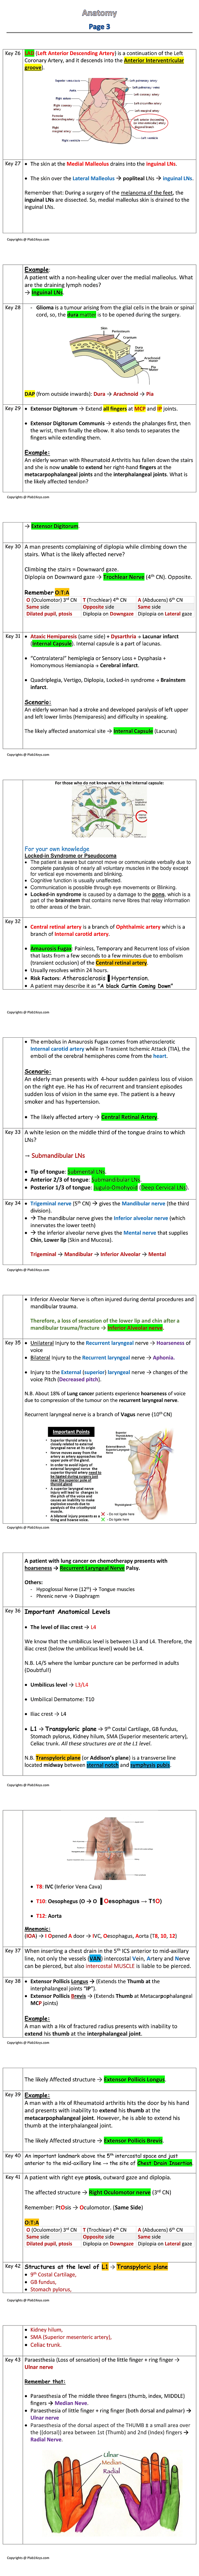 Anat3 1page-1.png